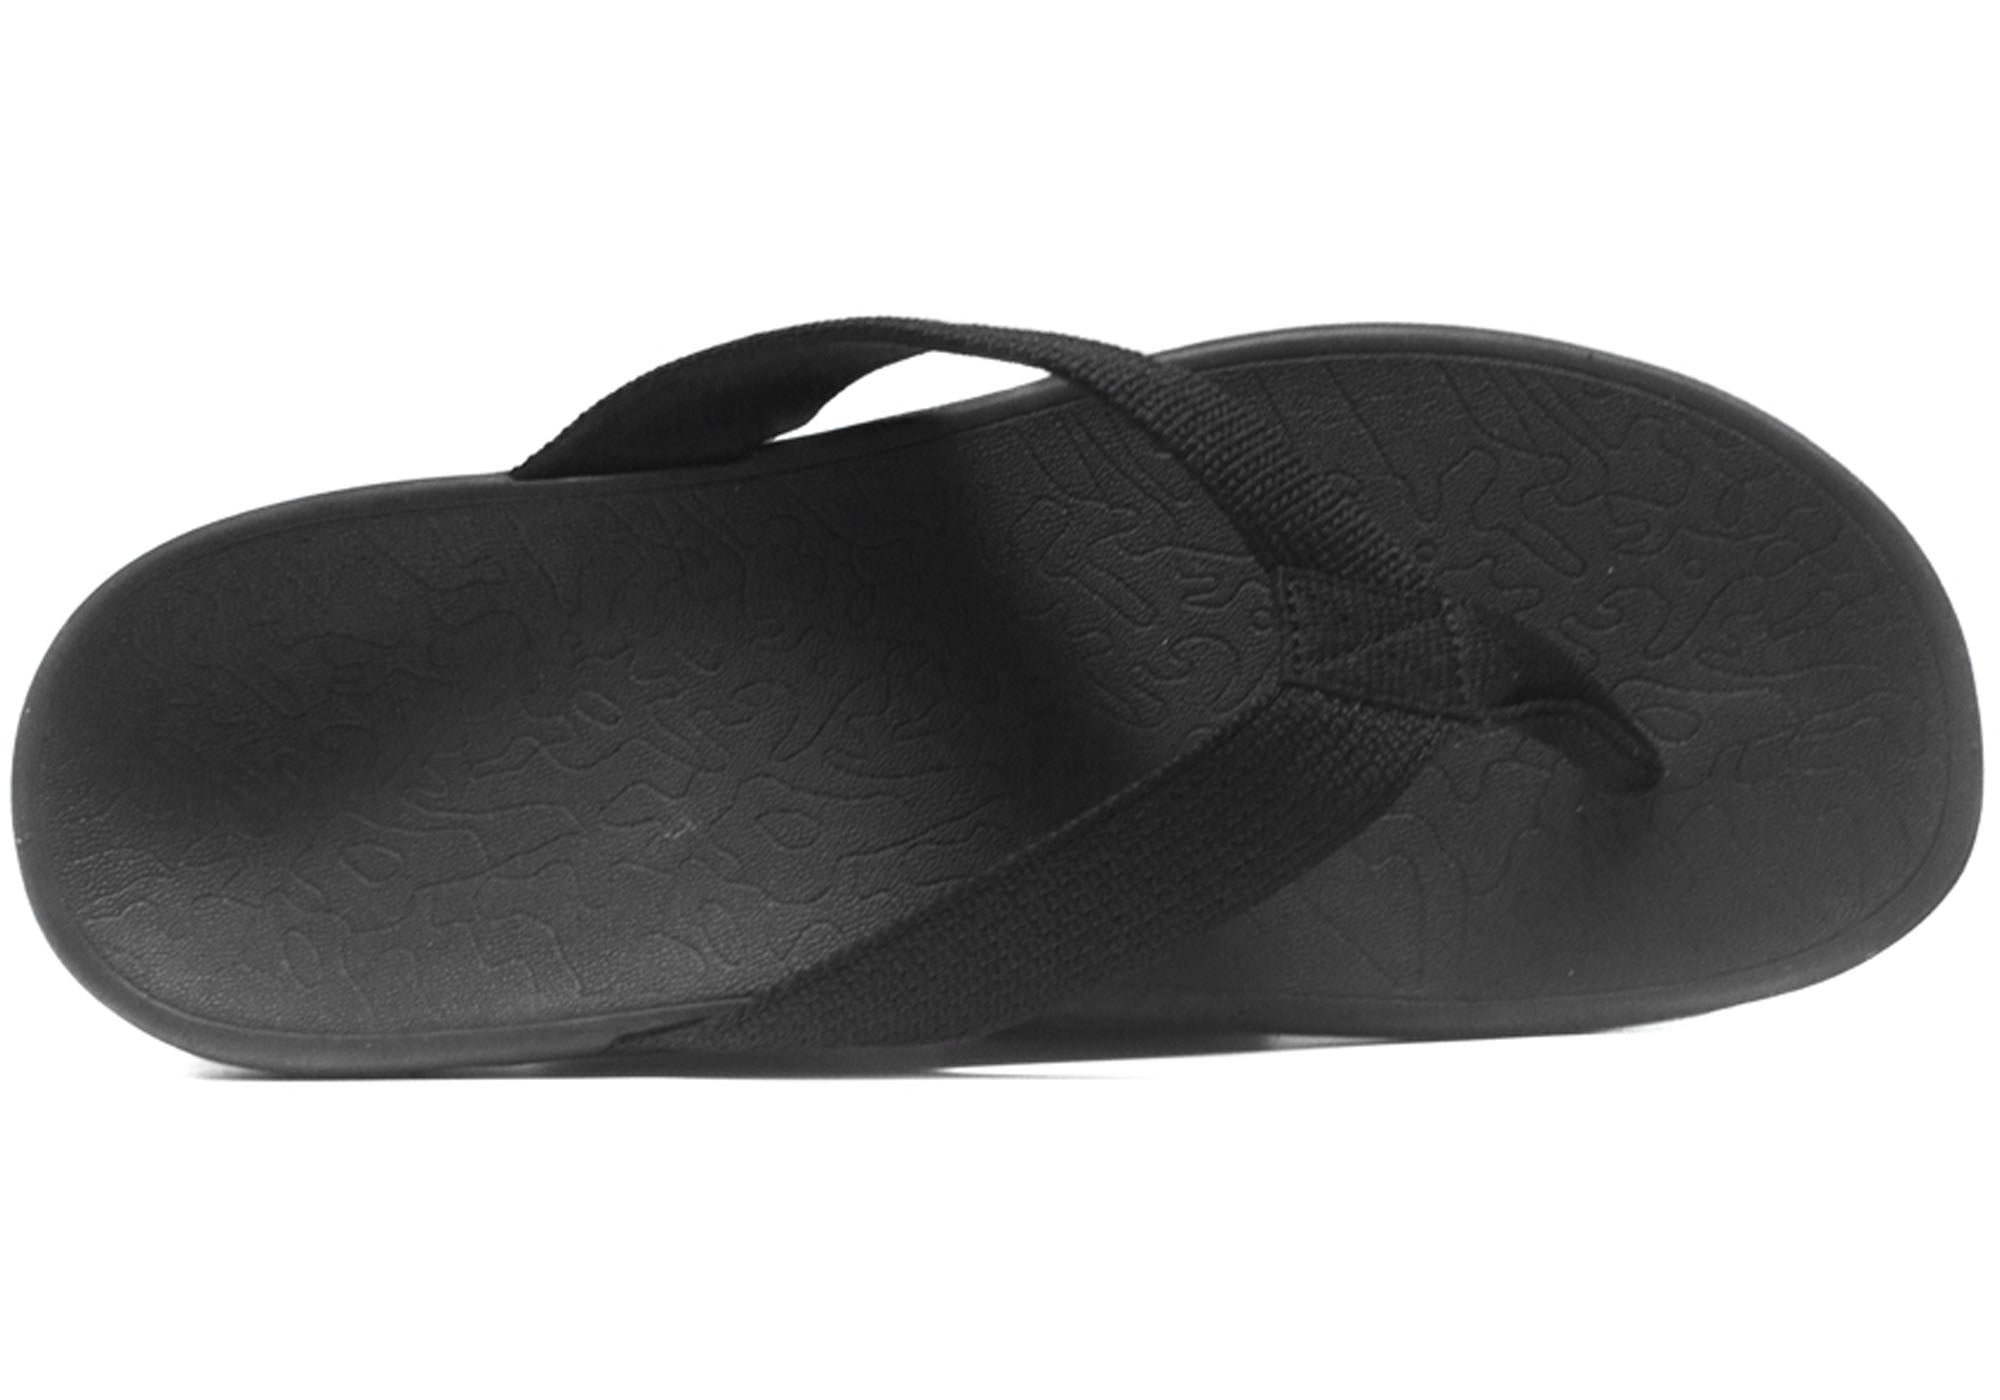 b45721d10ace13 Home Axign Womens Comfortable Supportive Orthotic Flip Flops Thongs. Black  ...